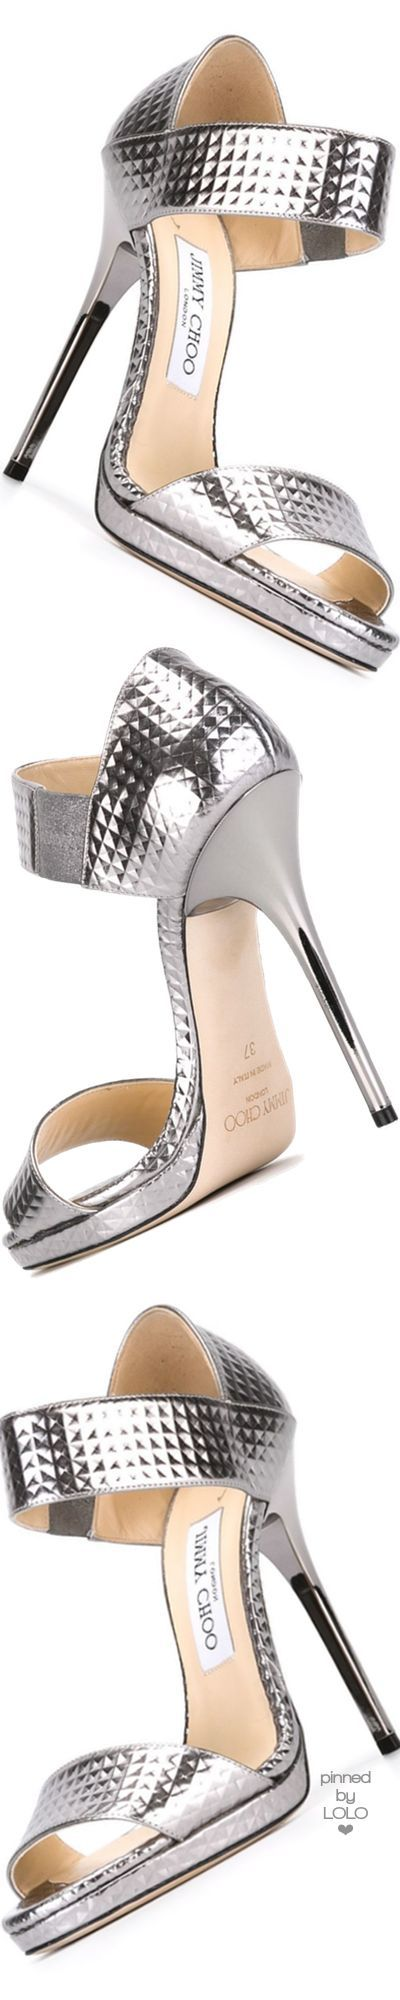 Jimmy Choo ~ Lee SIlver Metallic Sandal Heels